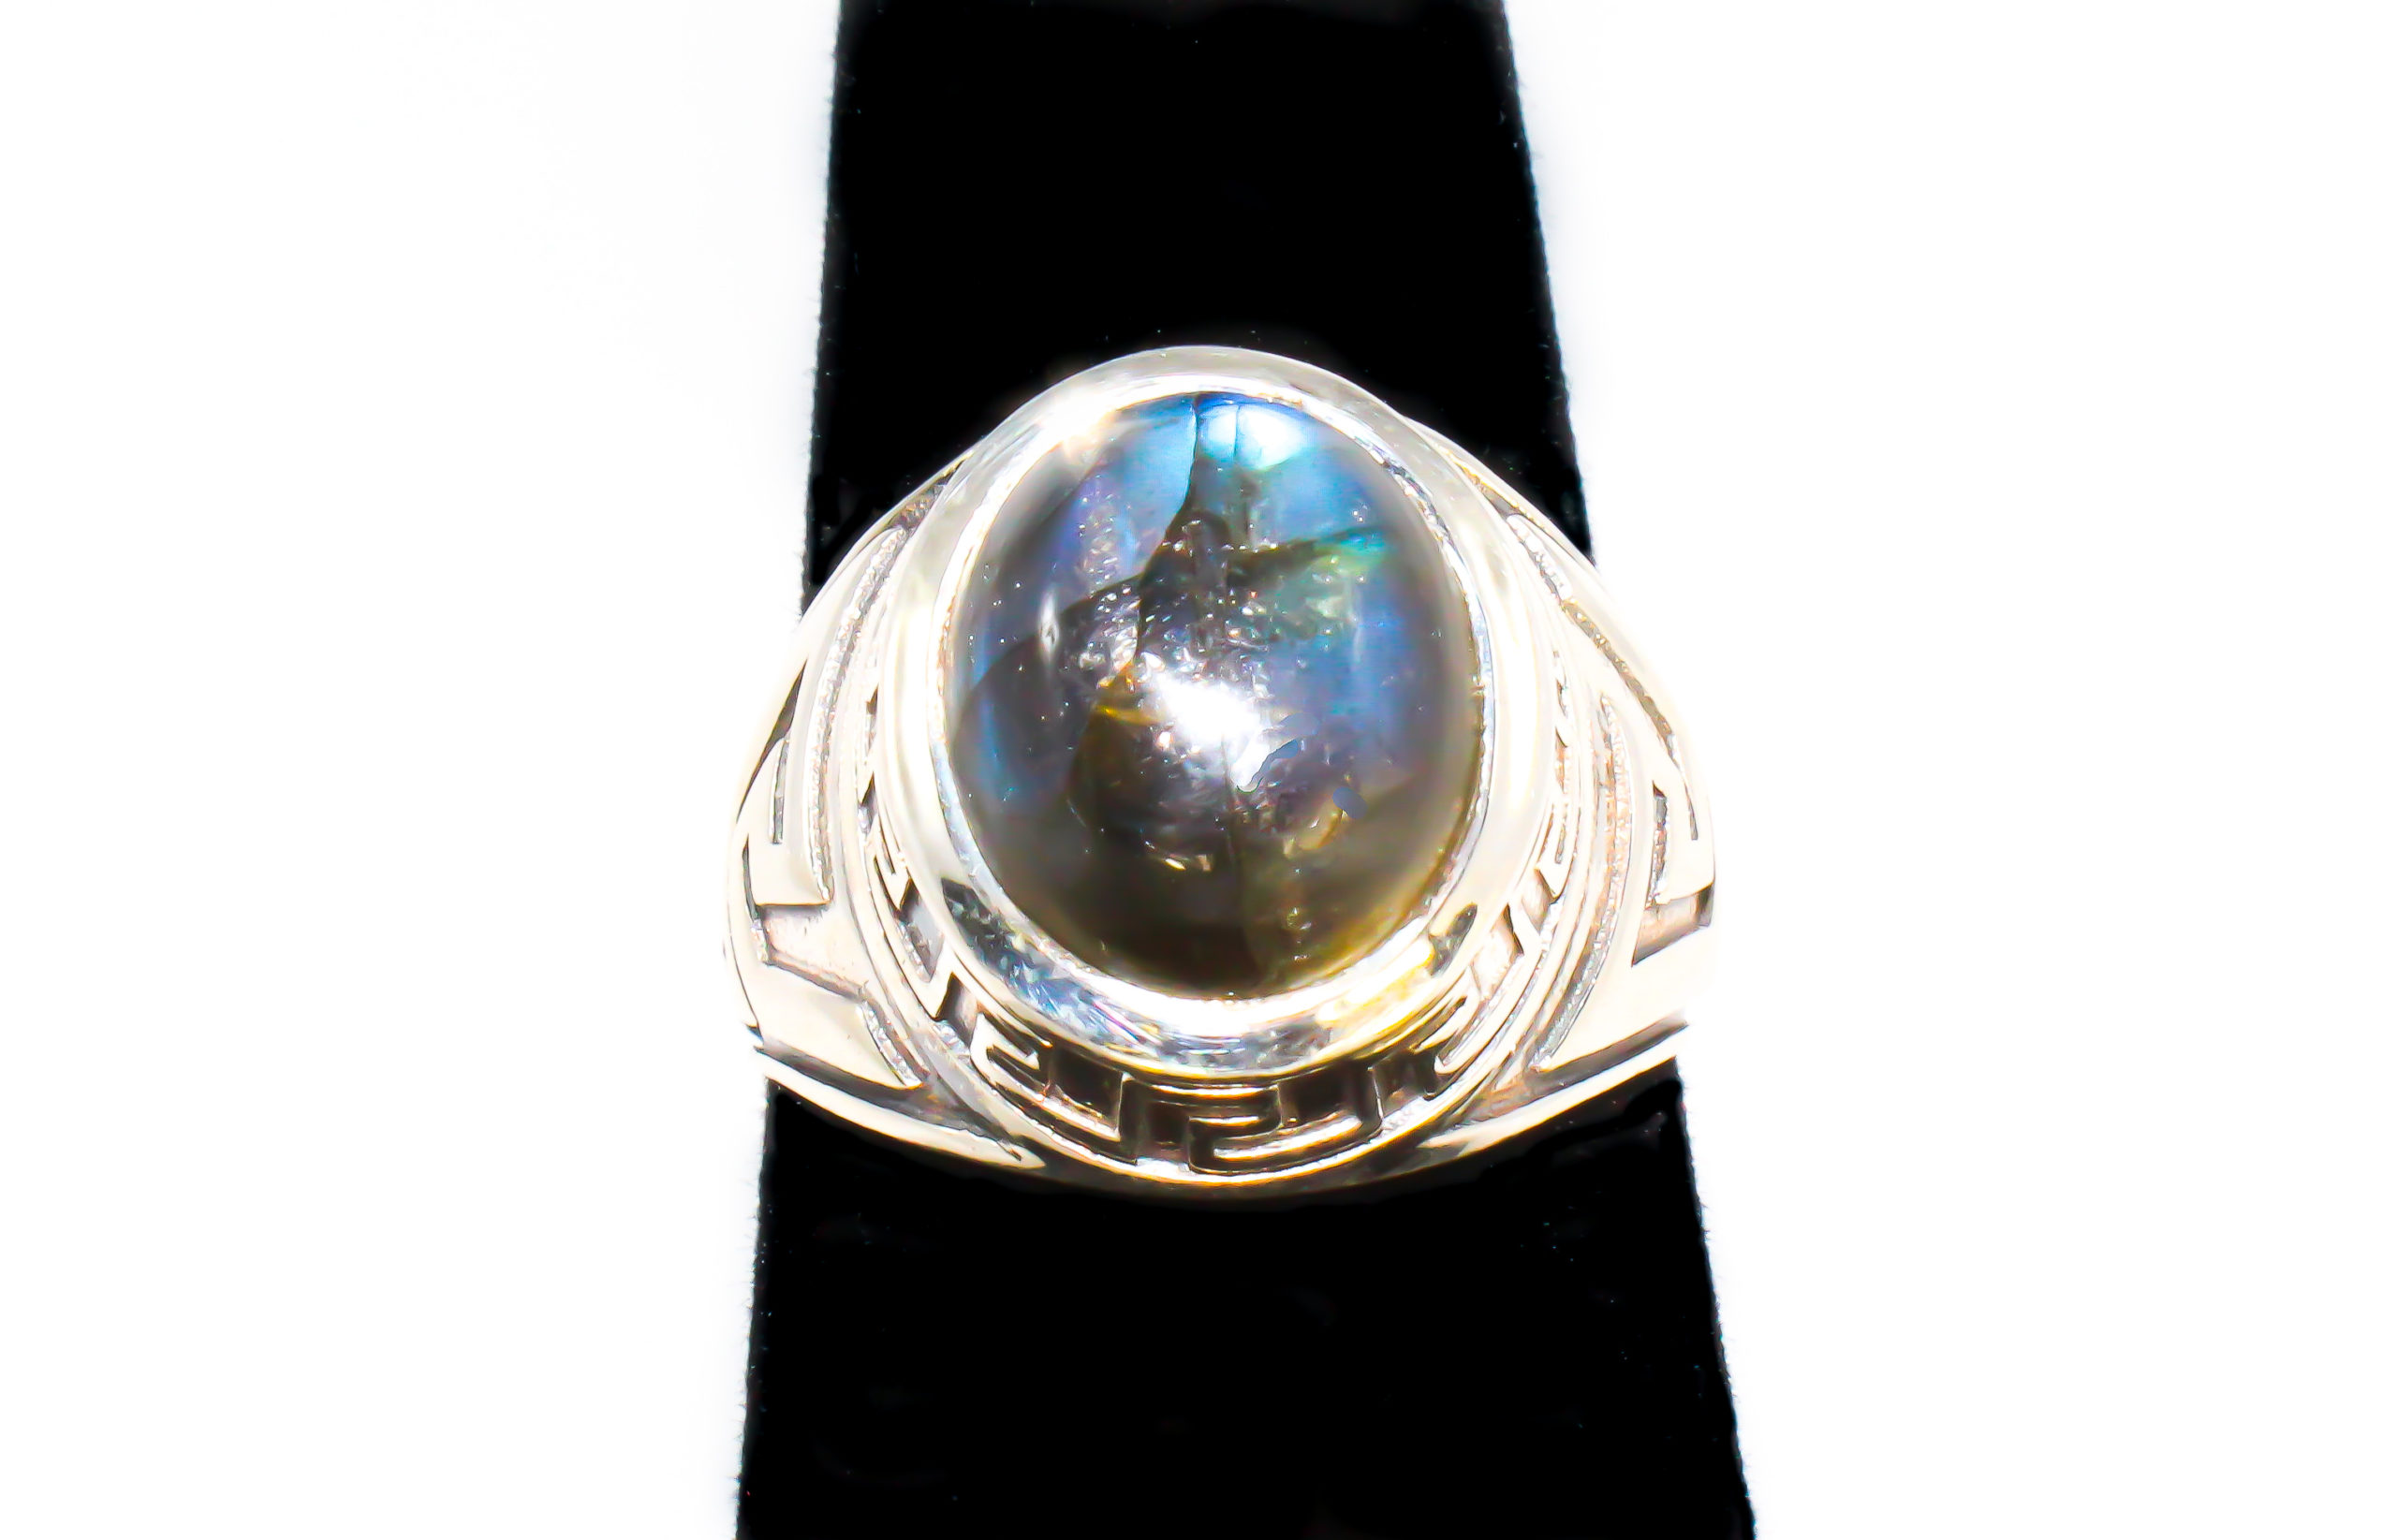 Genuine Labradorite Stone Ring Set in Sterling Silver